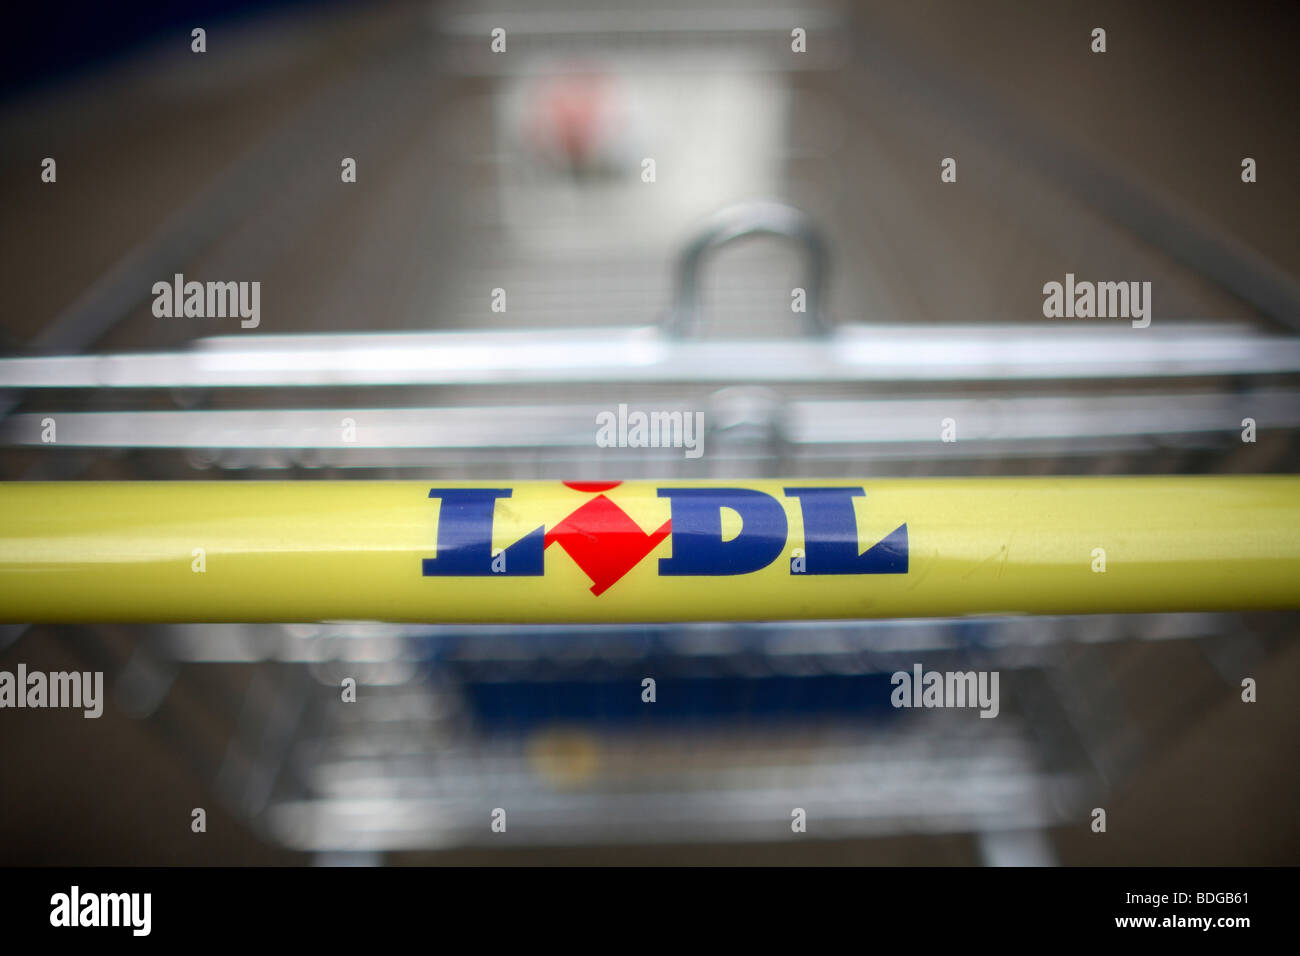 Lidl shopping trolley - Stock Image